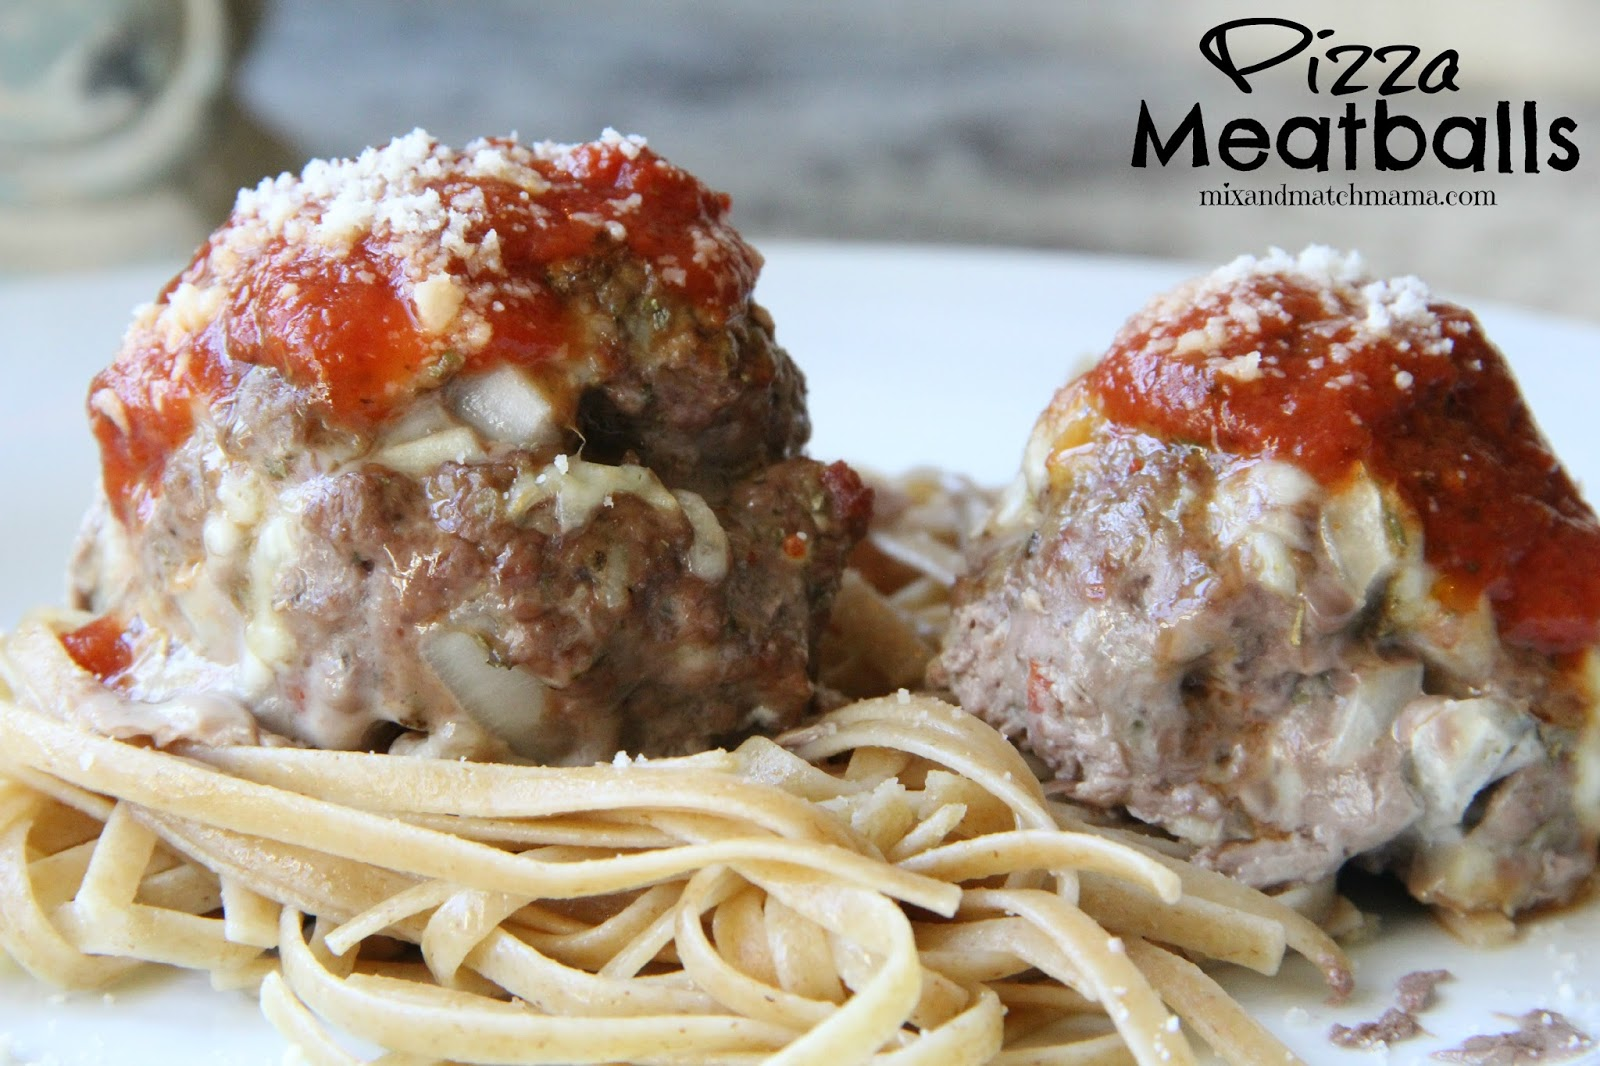 ... kids love pizza and they love meatballs so i just made some meatballs